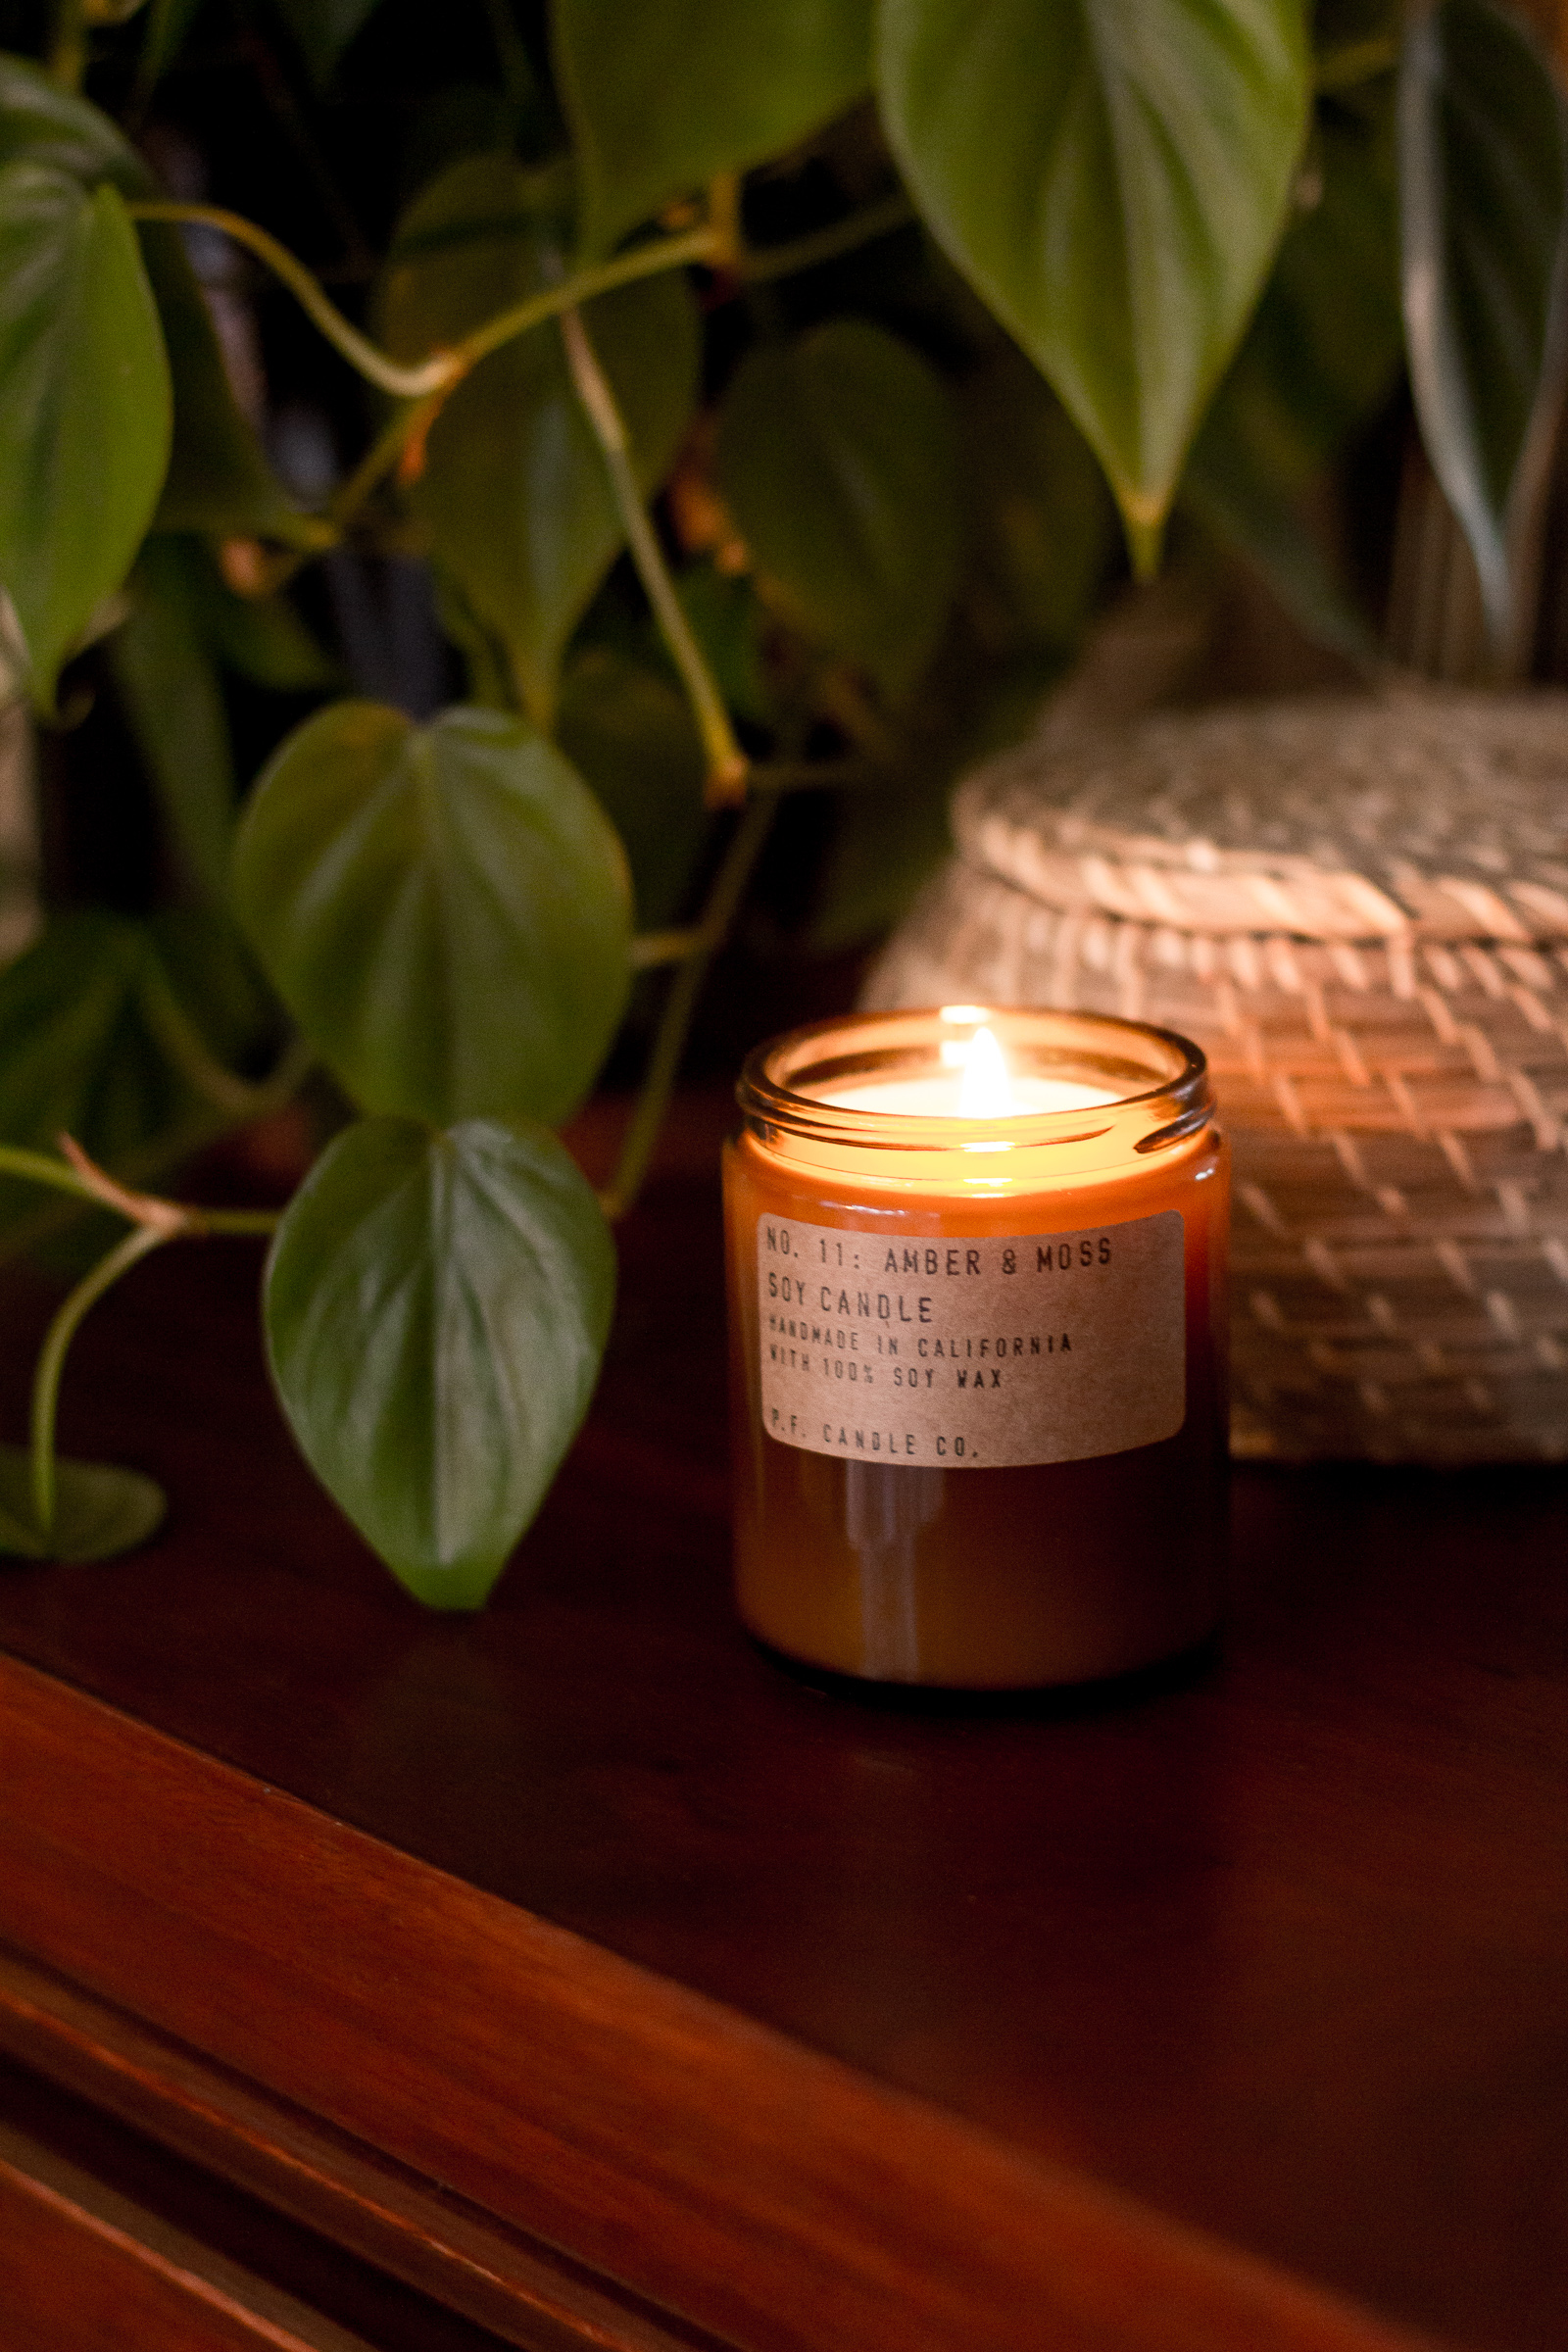 Our P.F. Candle Co Candle